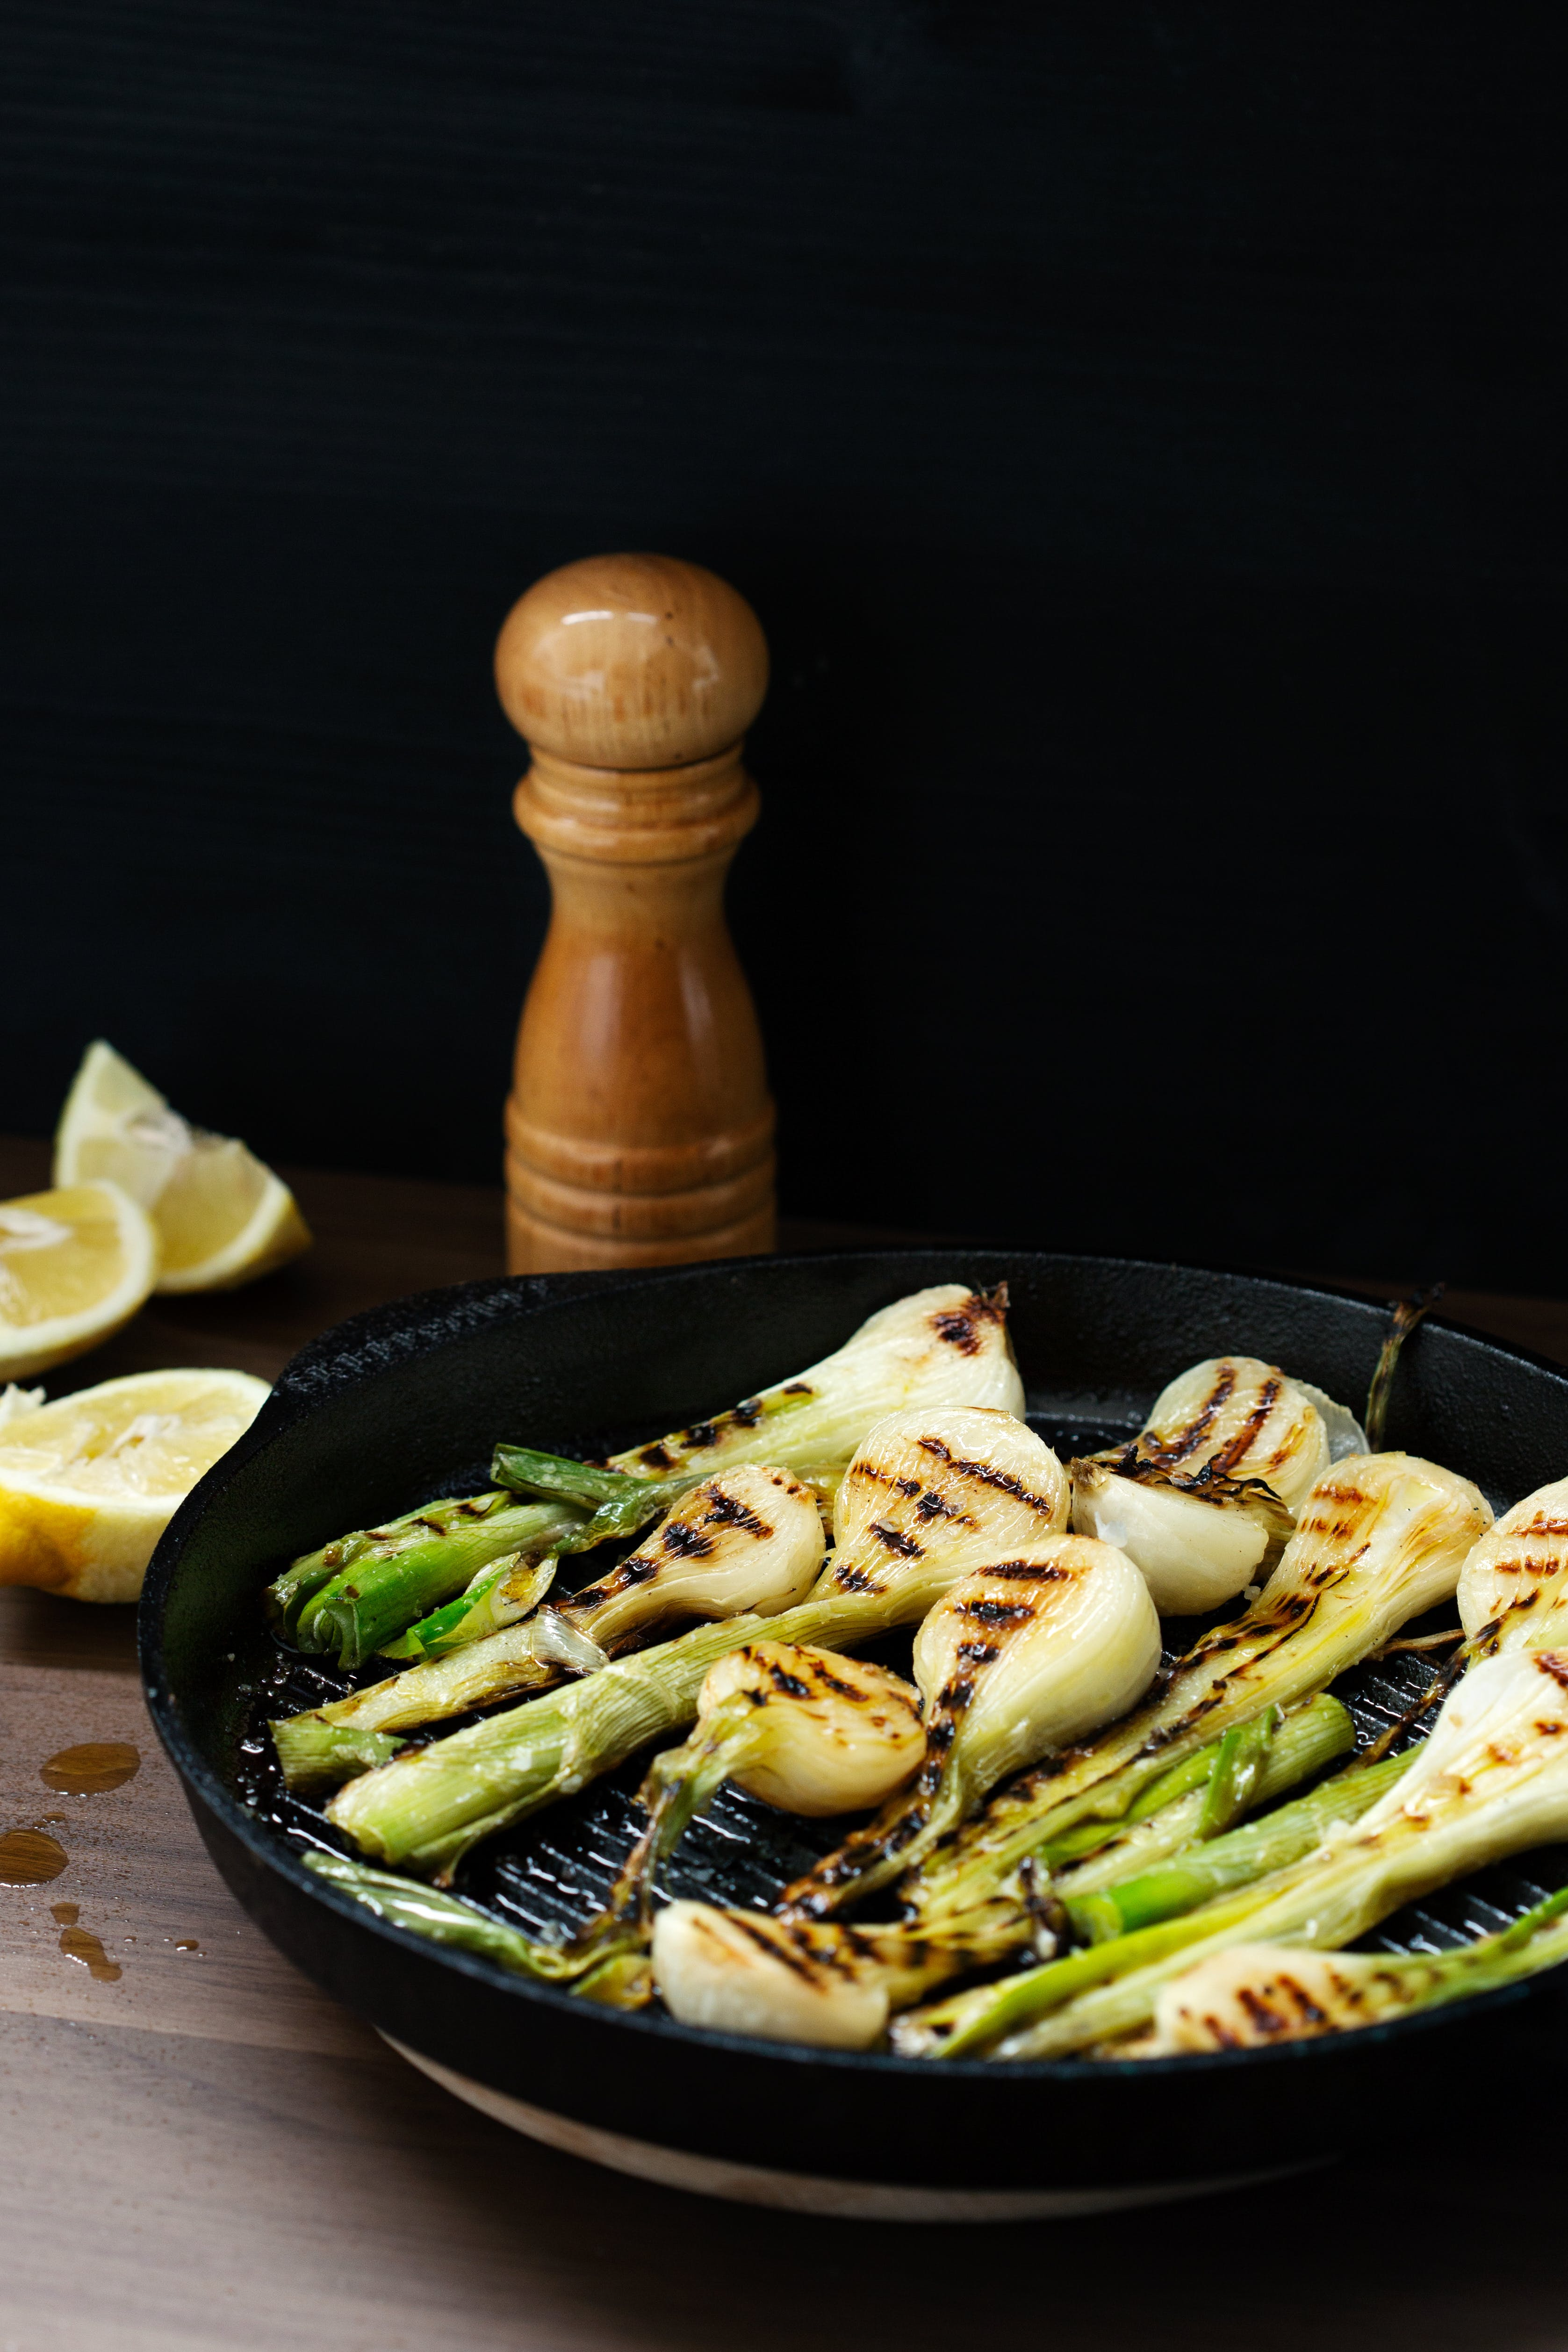 Grilled fresh onions